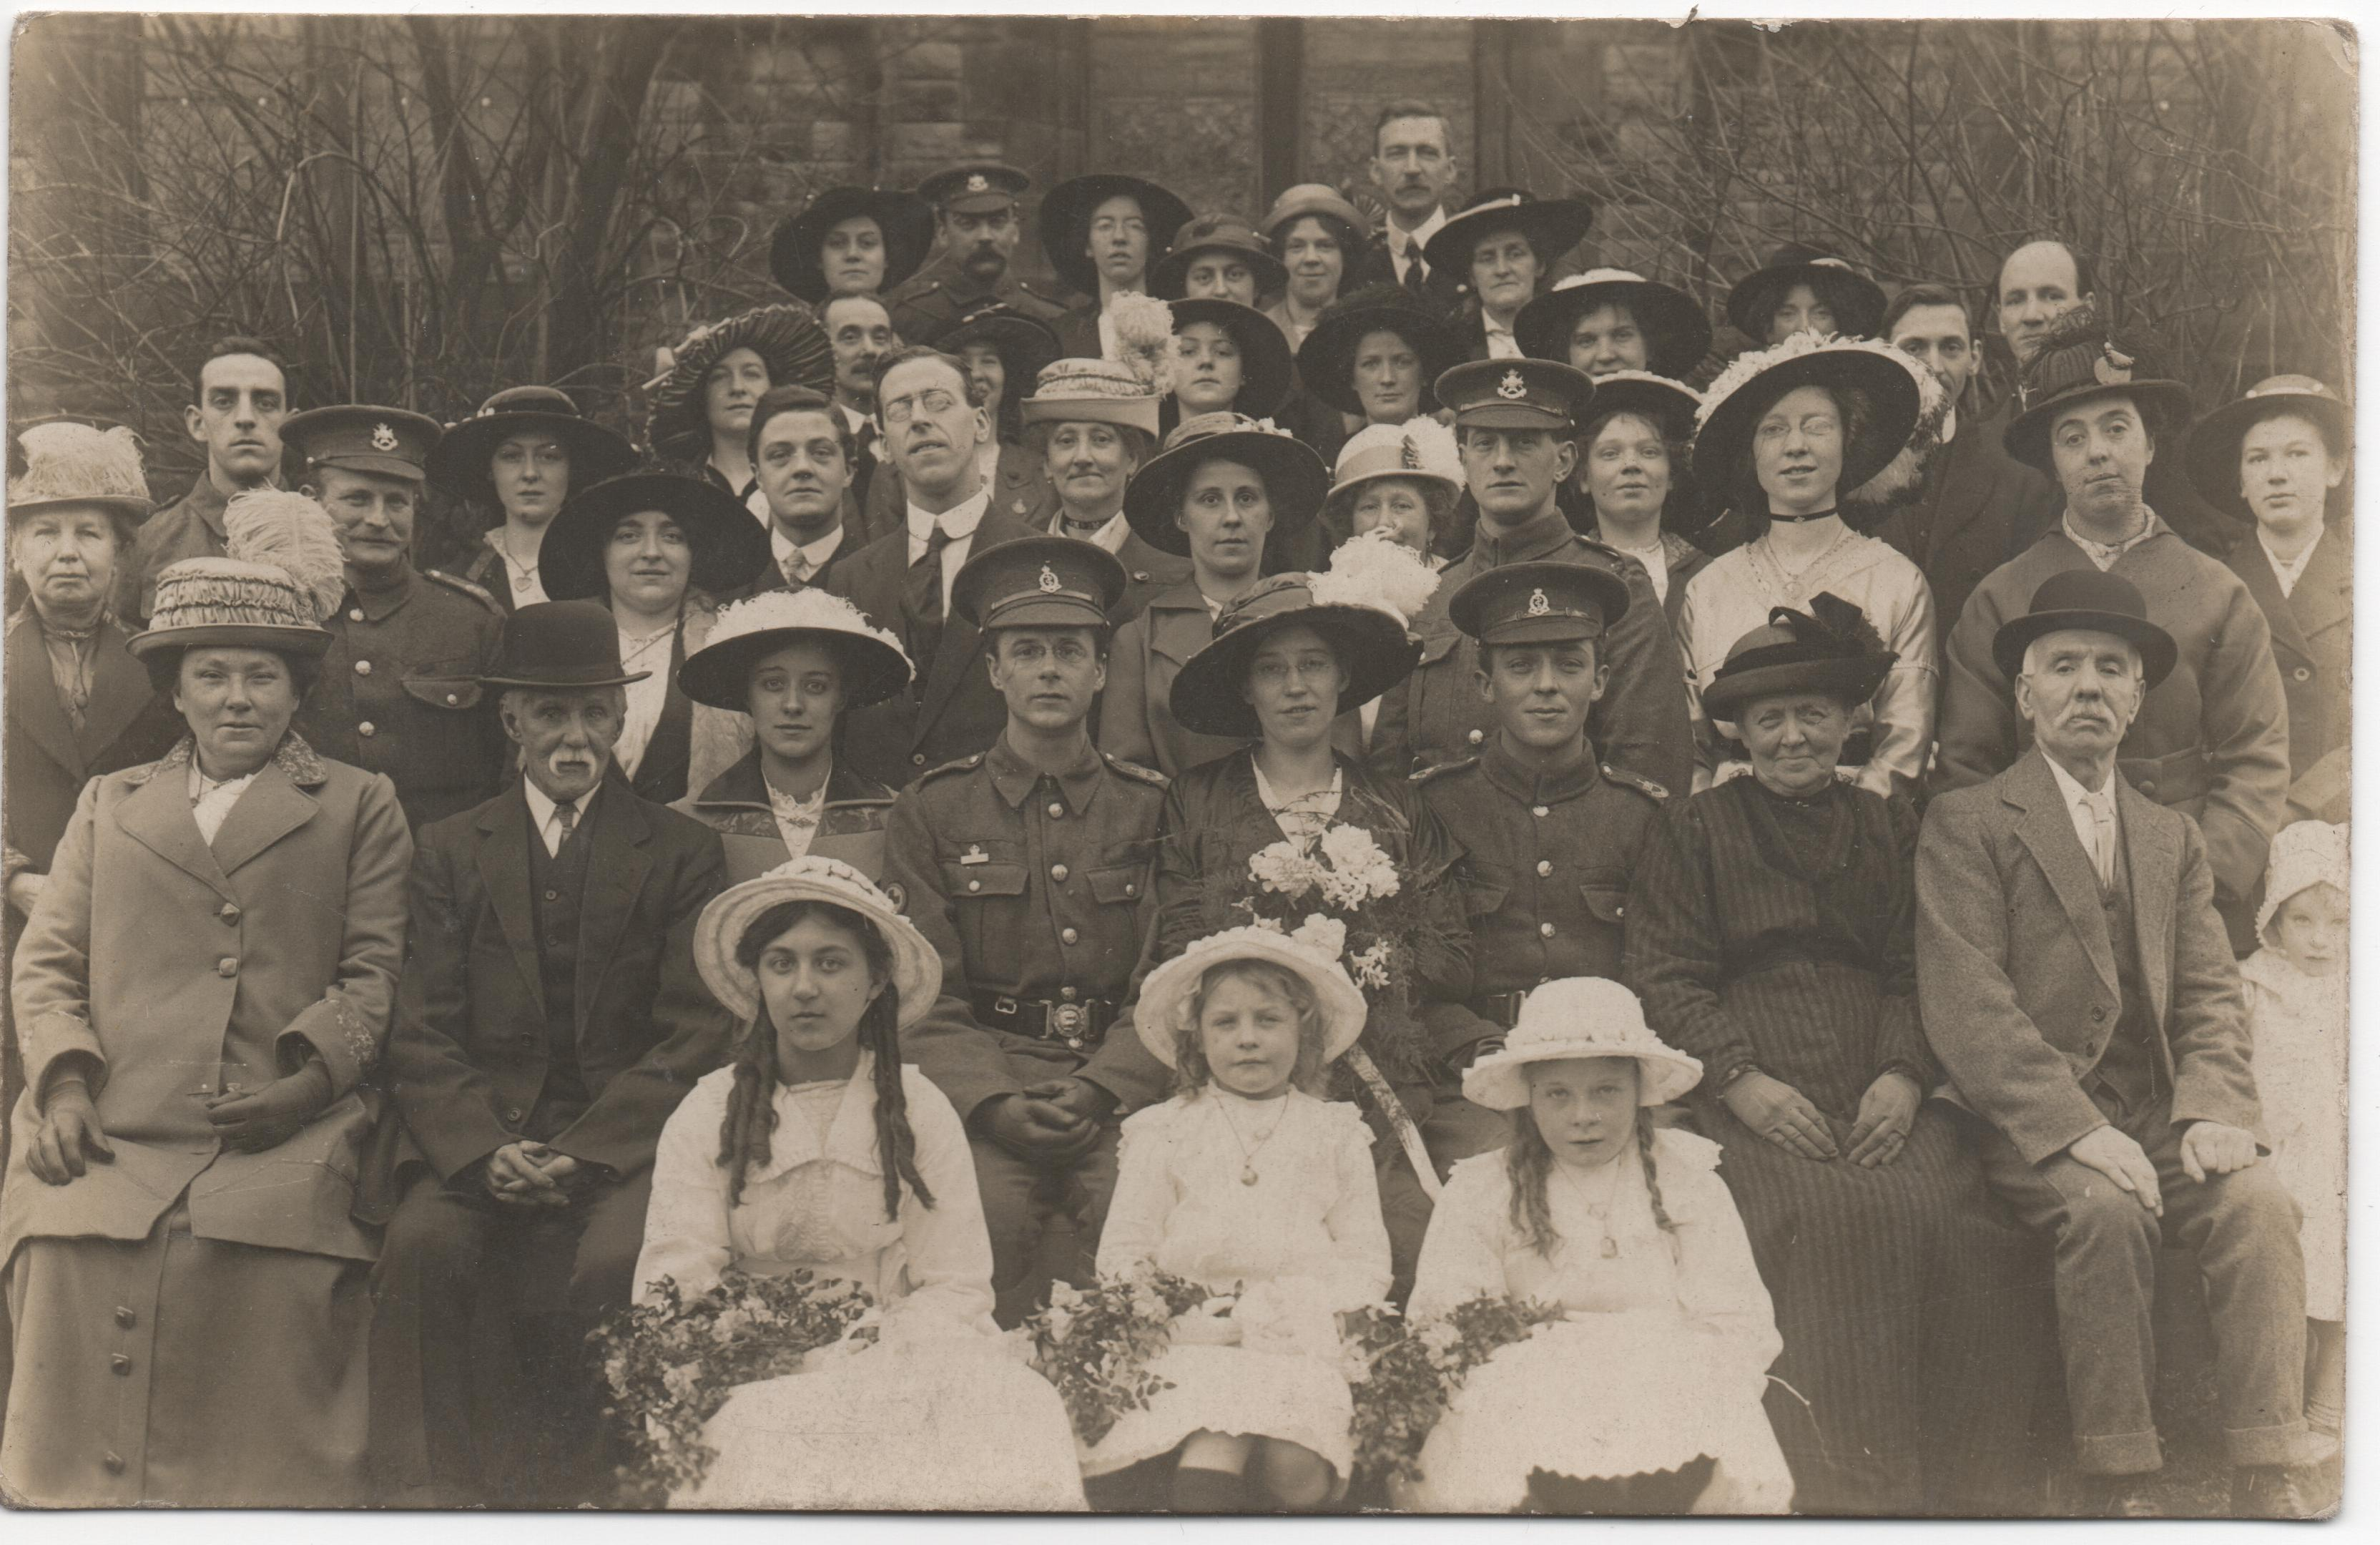 1914 wedding of Joseph Nall, Chapel en le Frith post office staff. William Hudson in back row